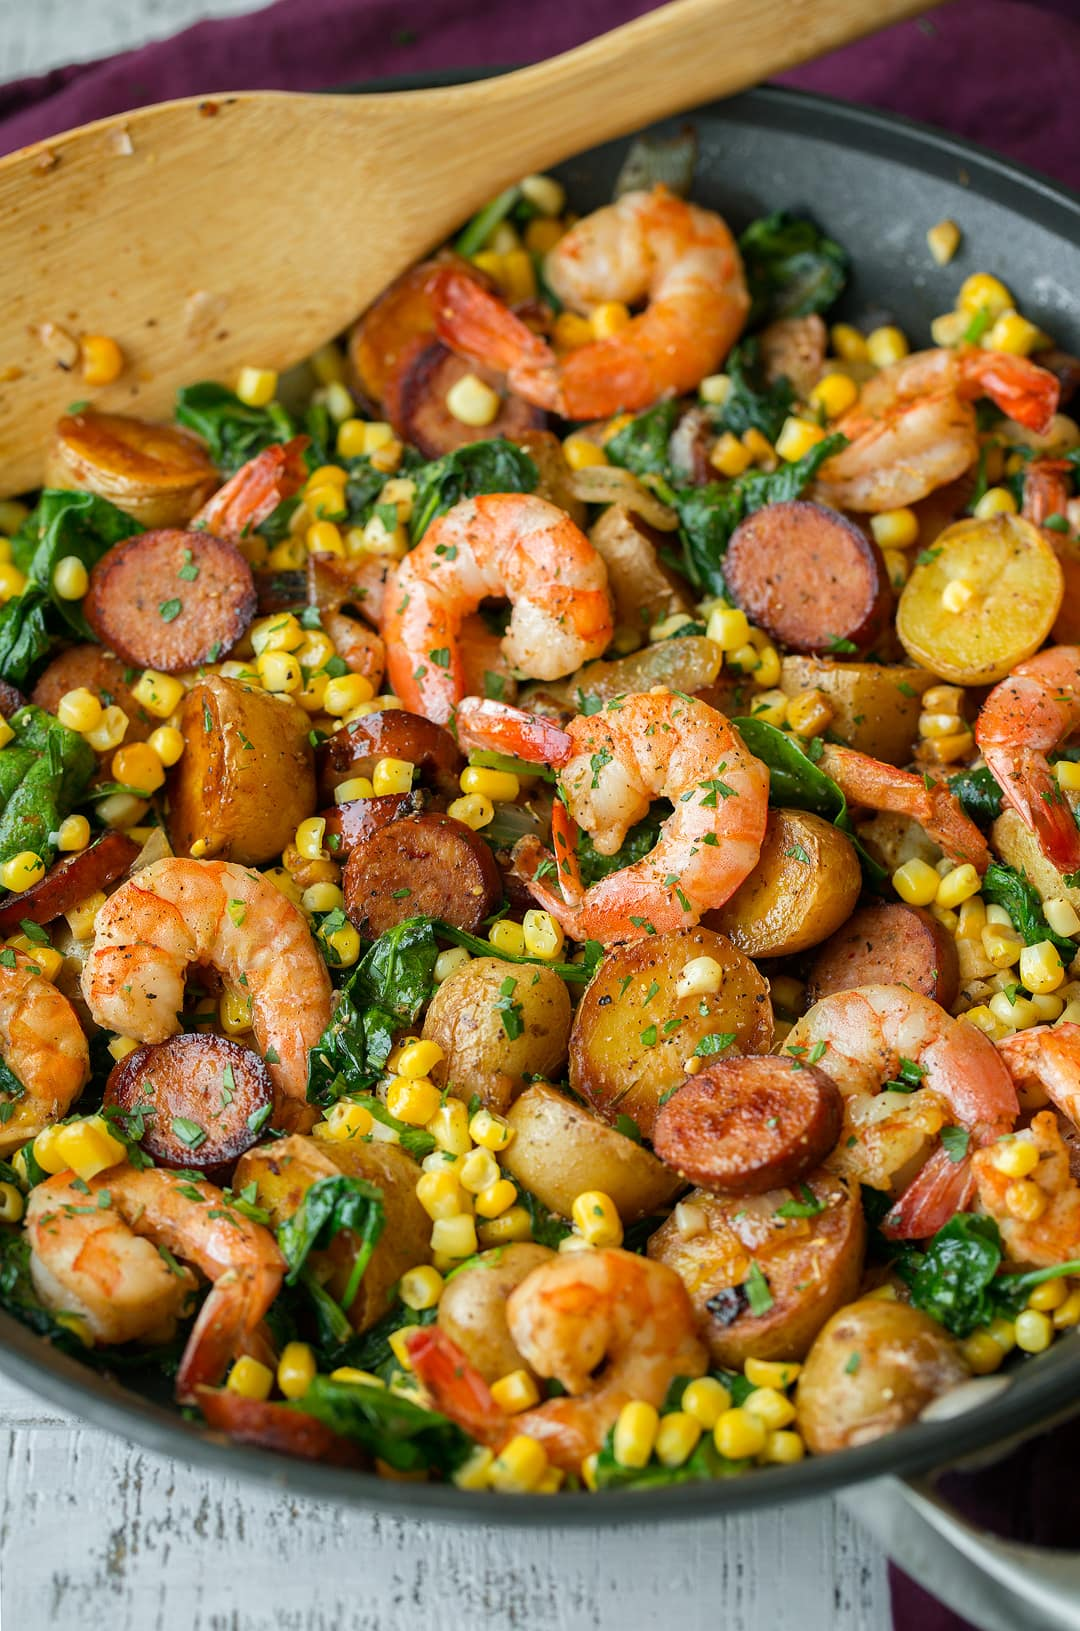 Shrimp Boil that includes shrimp, potatoes, corn, sausage, old bay seasoning, spinach and lemon